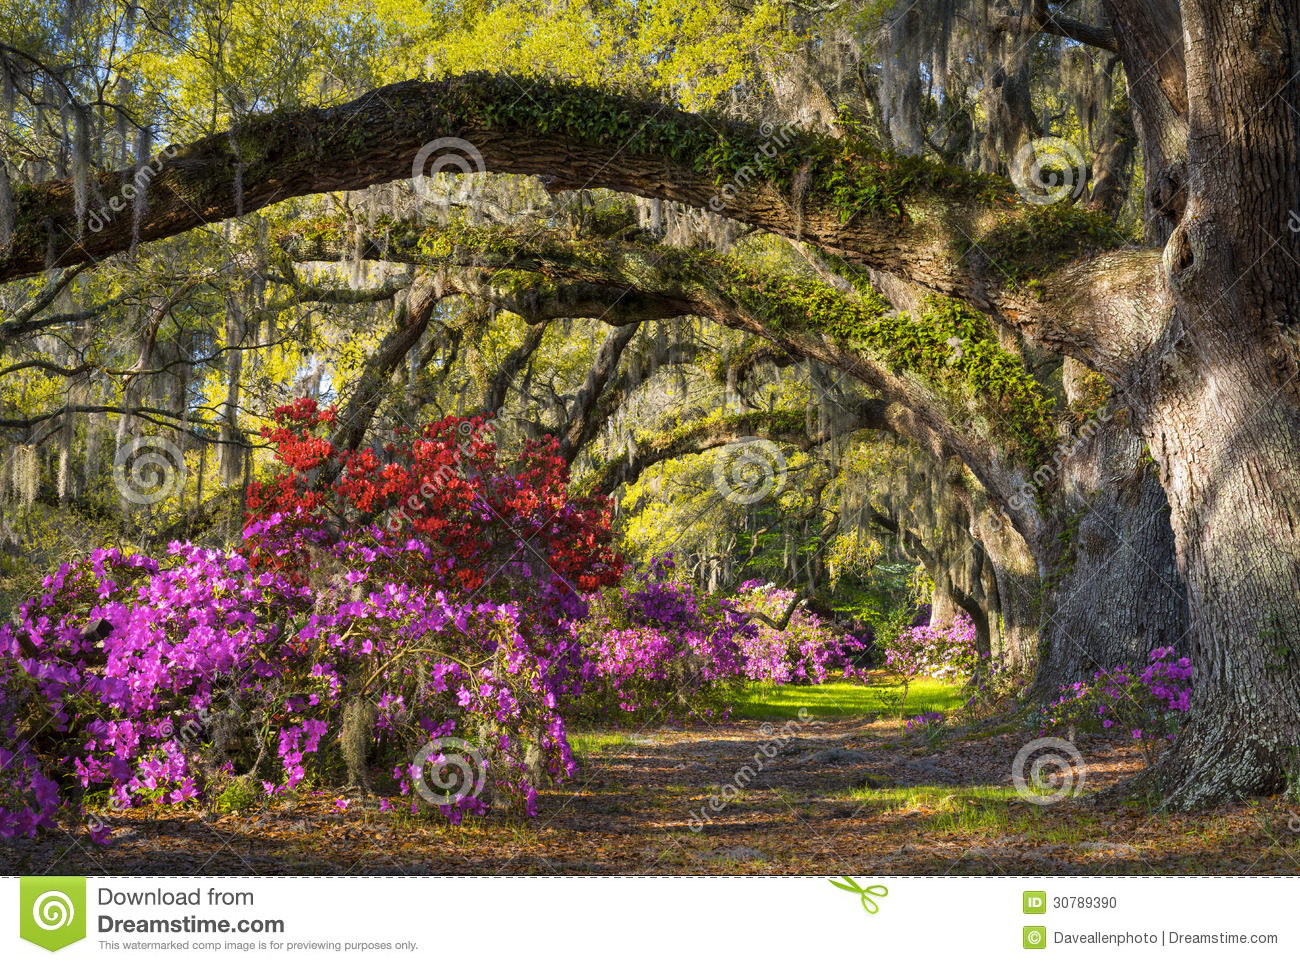 Jardin d 39 azalea flowers south carolina plantation de fleur for Jardin plantation